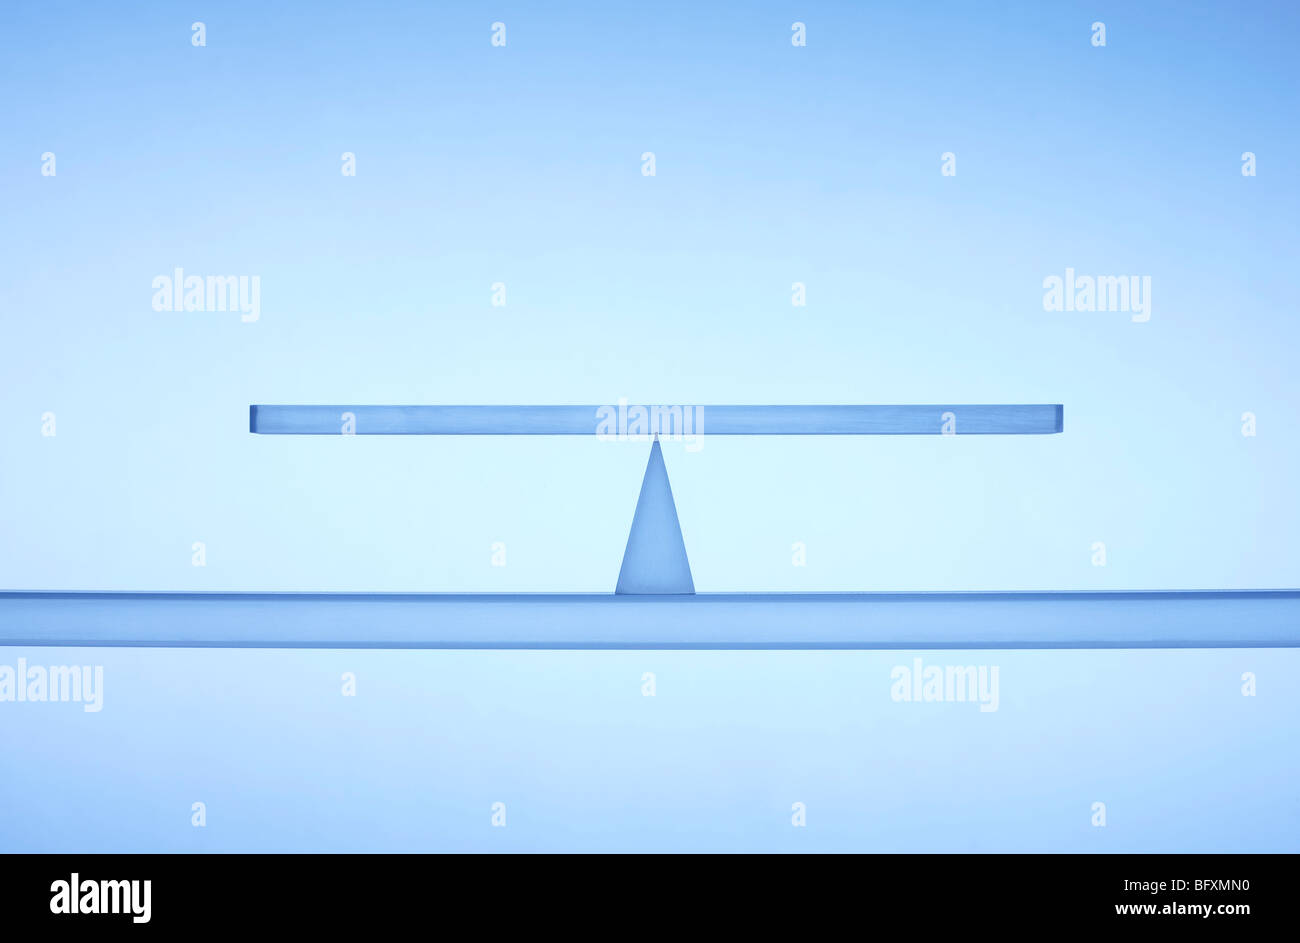 Transparent balance - Stock Image